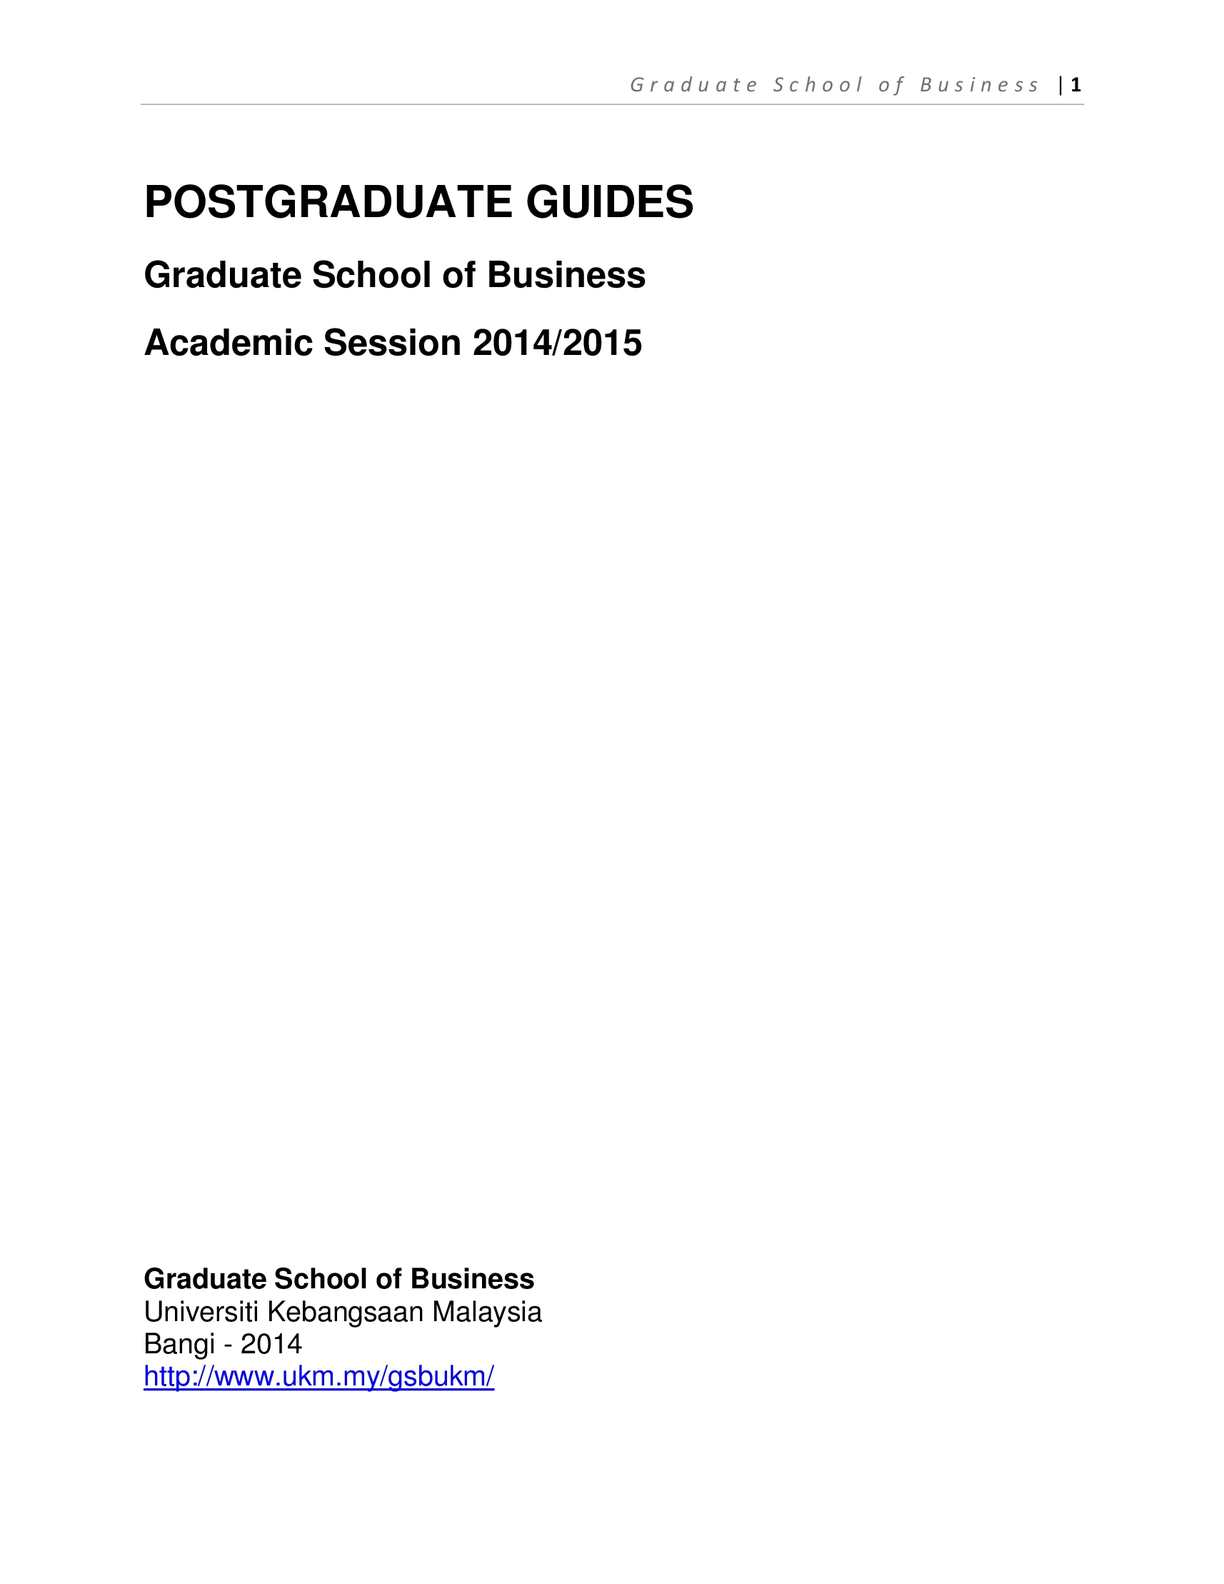 ukm postgraduate coursework